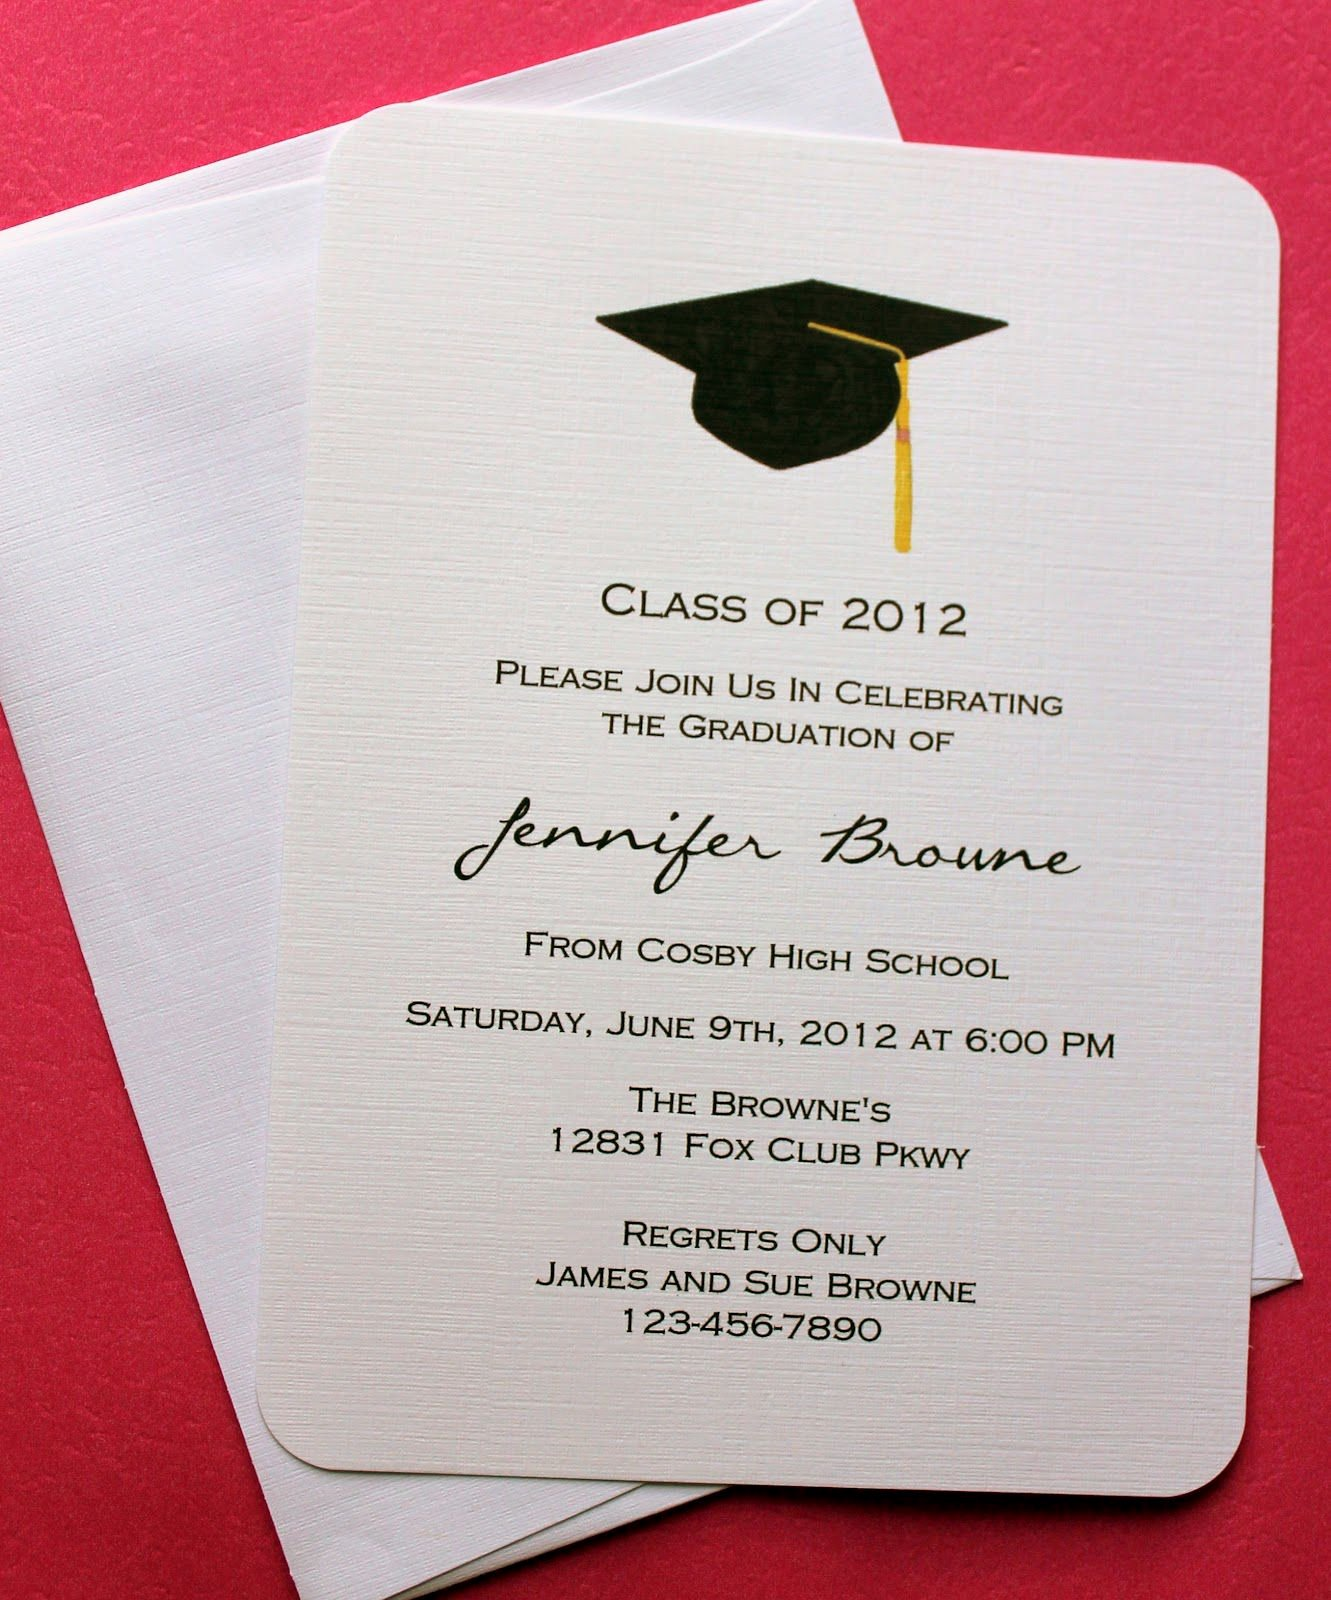 Graduation Program Template Word Awesome Graduation Invitation Template Graduation Invitation